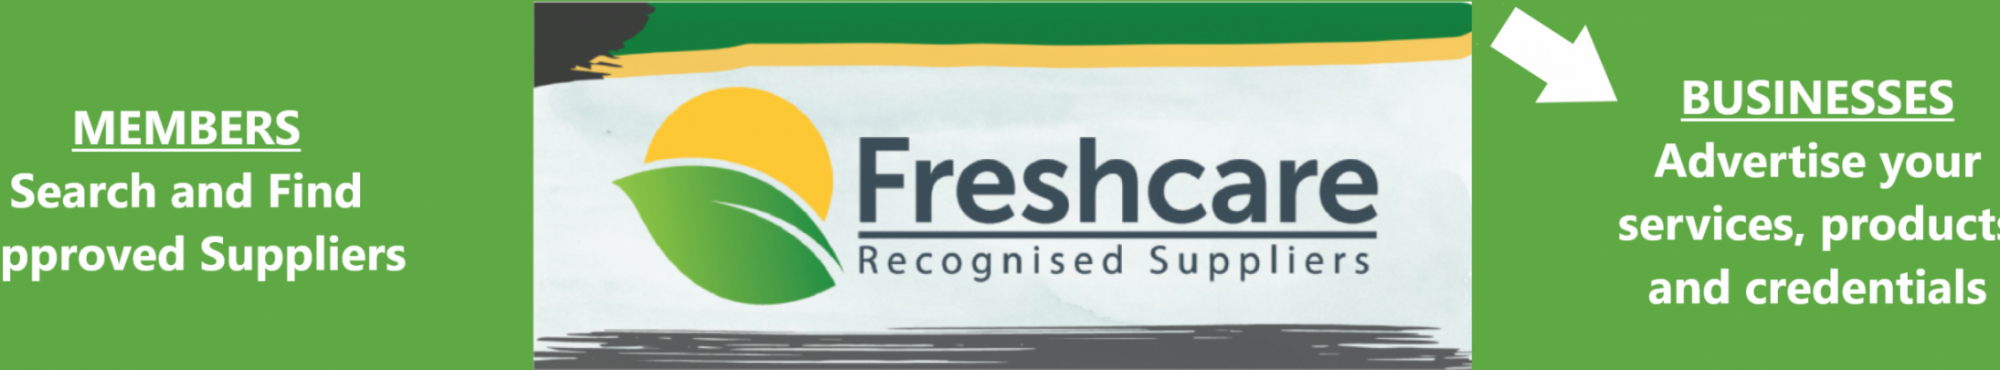 Join our Freshcare Recognised Supplier Register today!